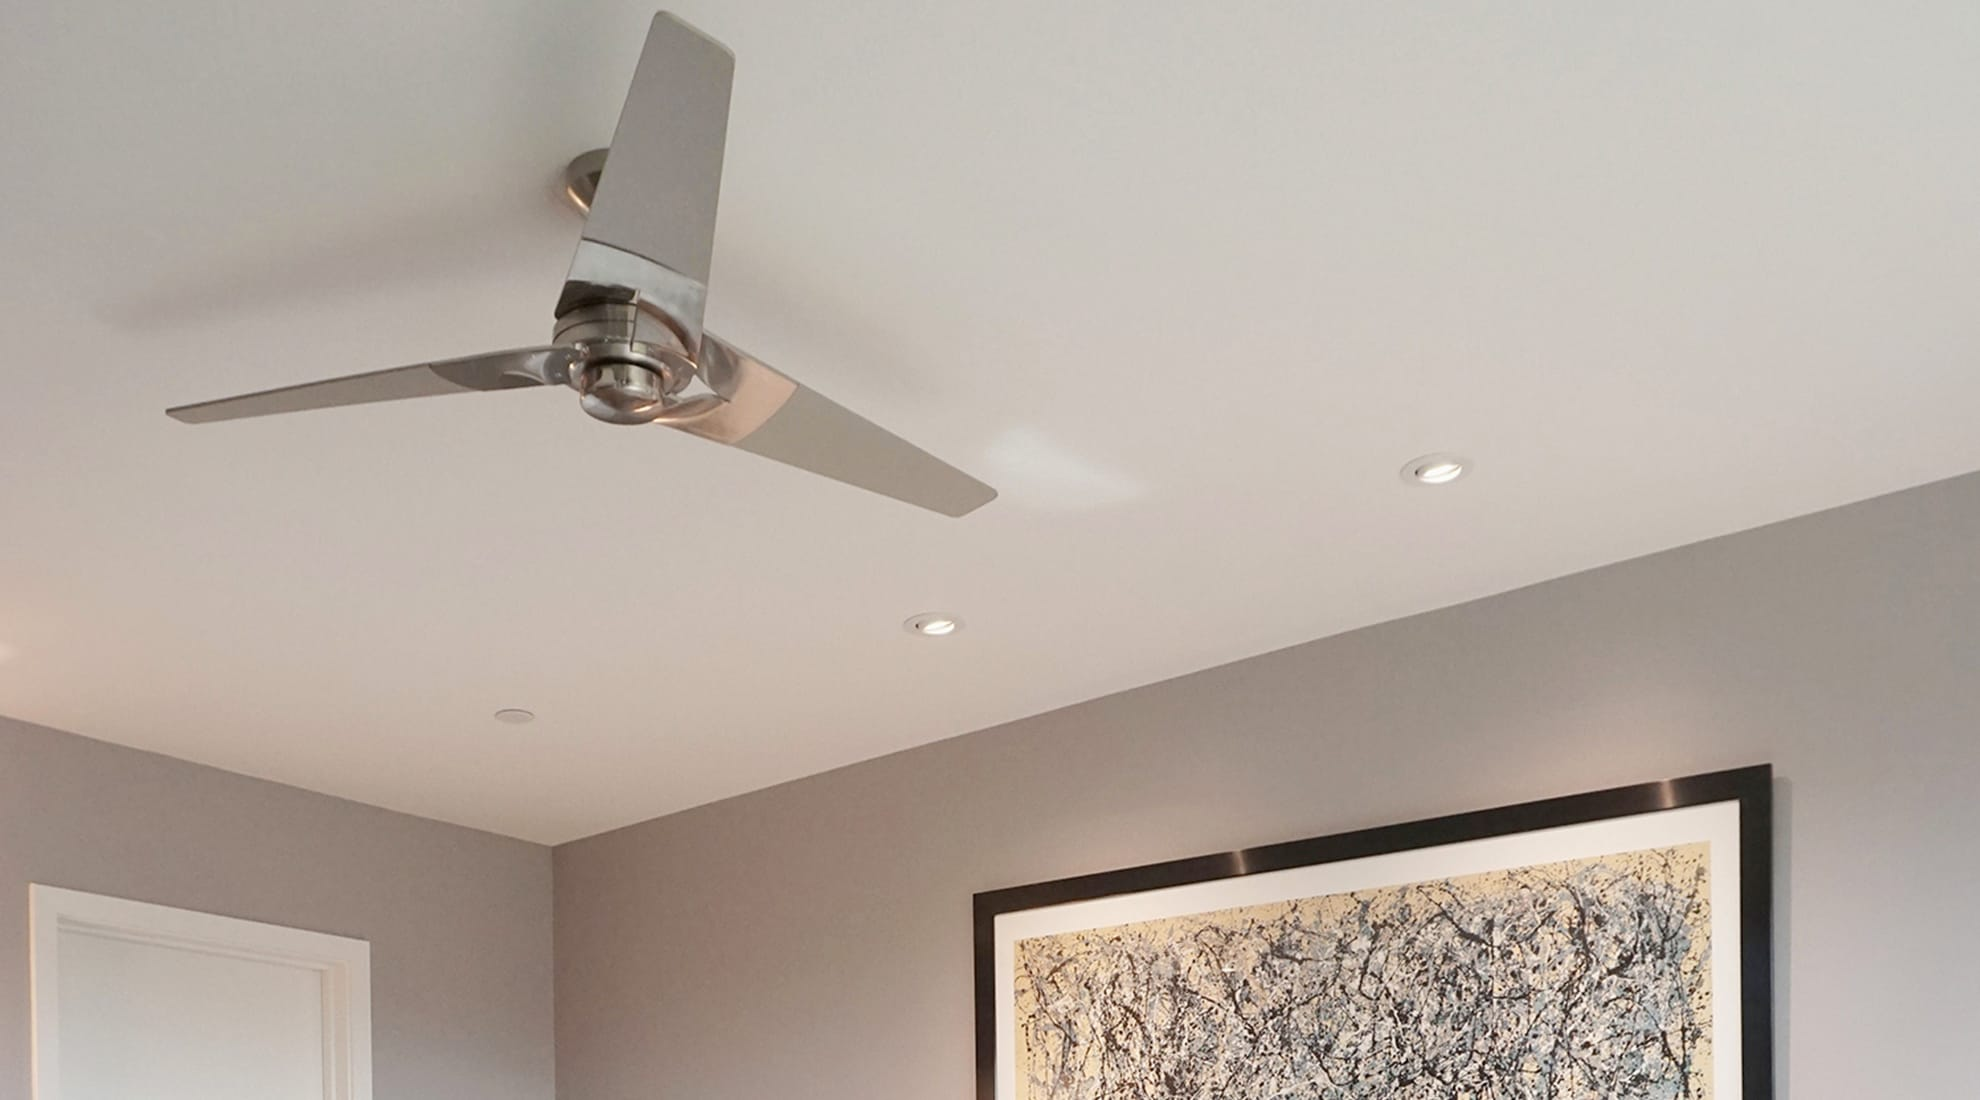 For the Trade: Sourcing Ceiling Fans